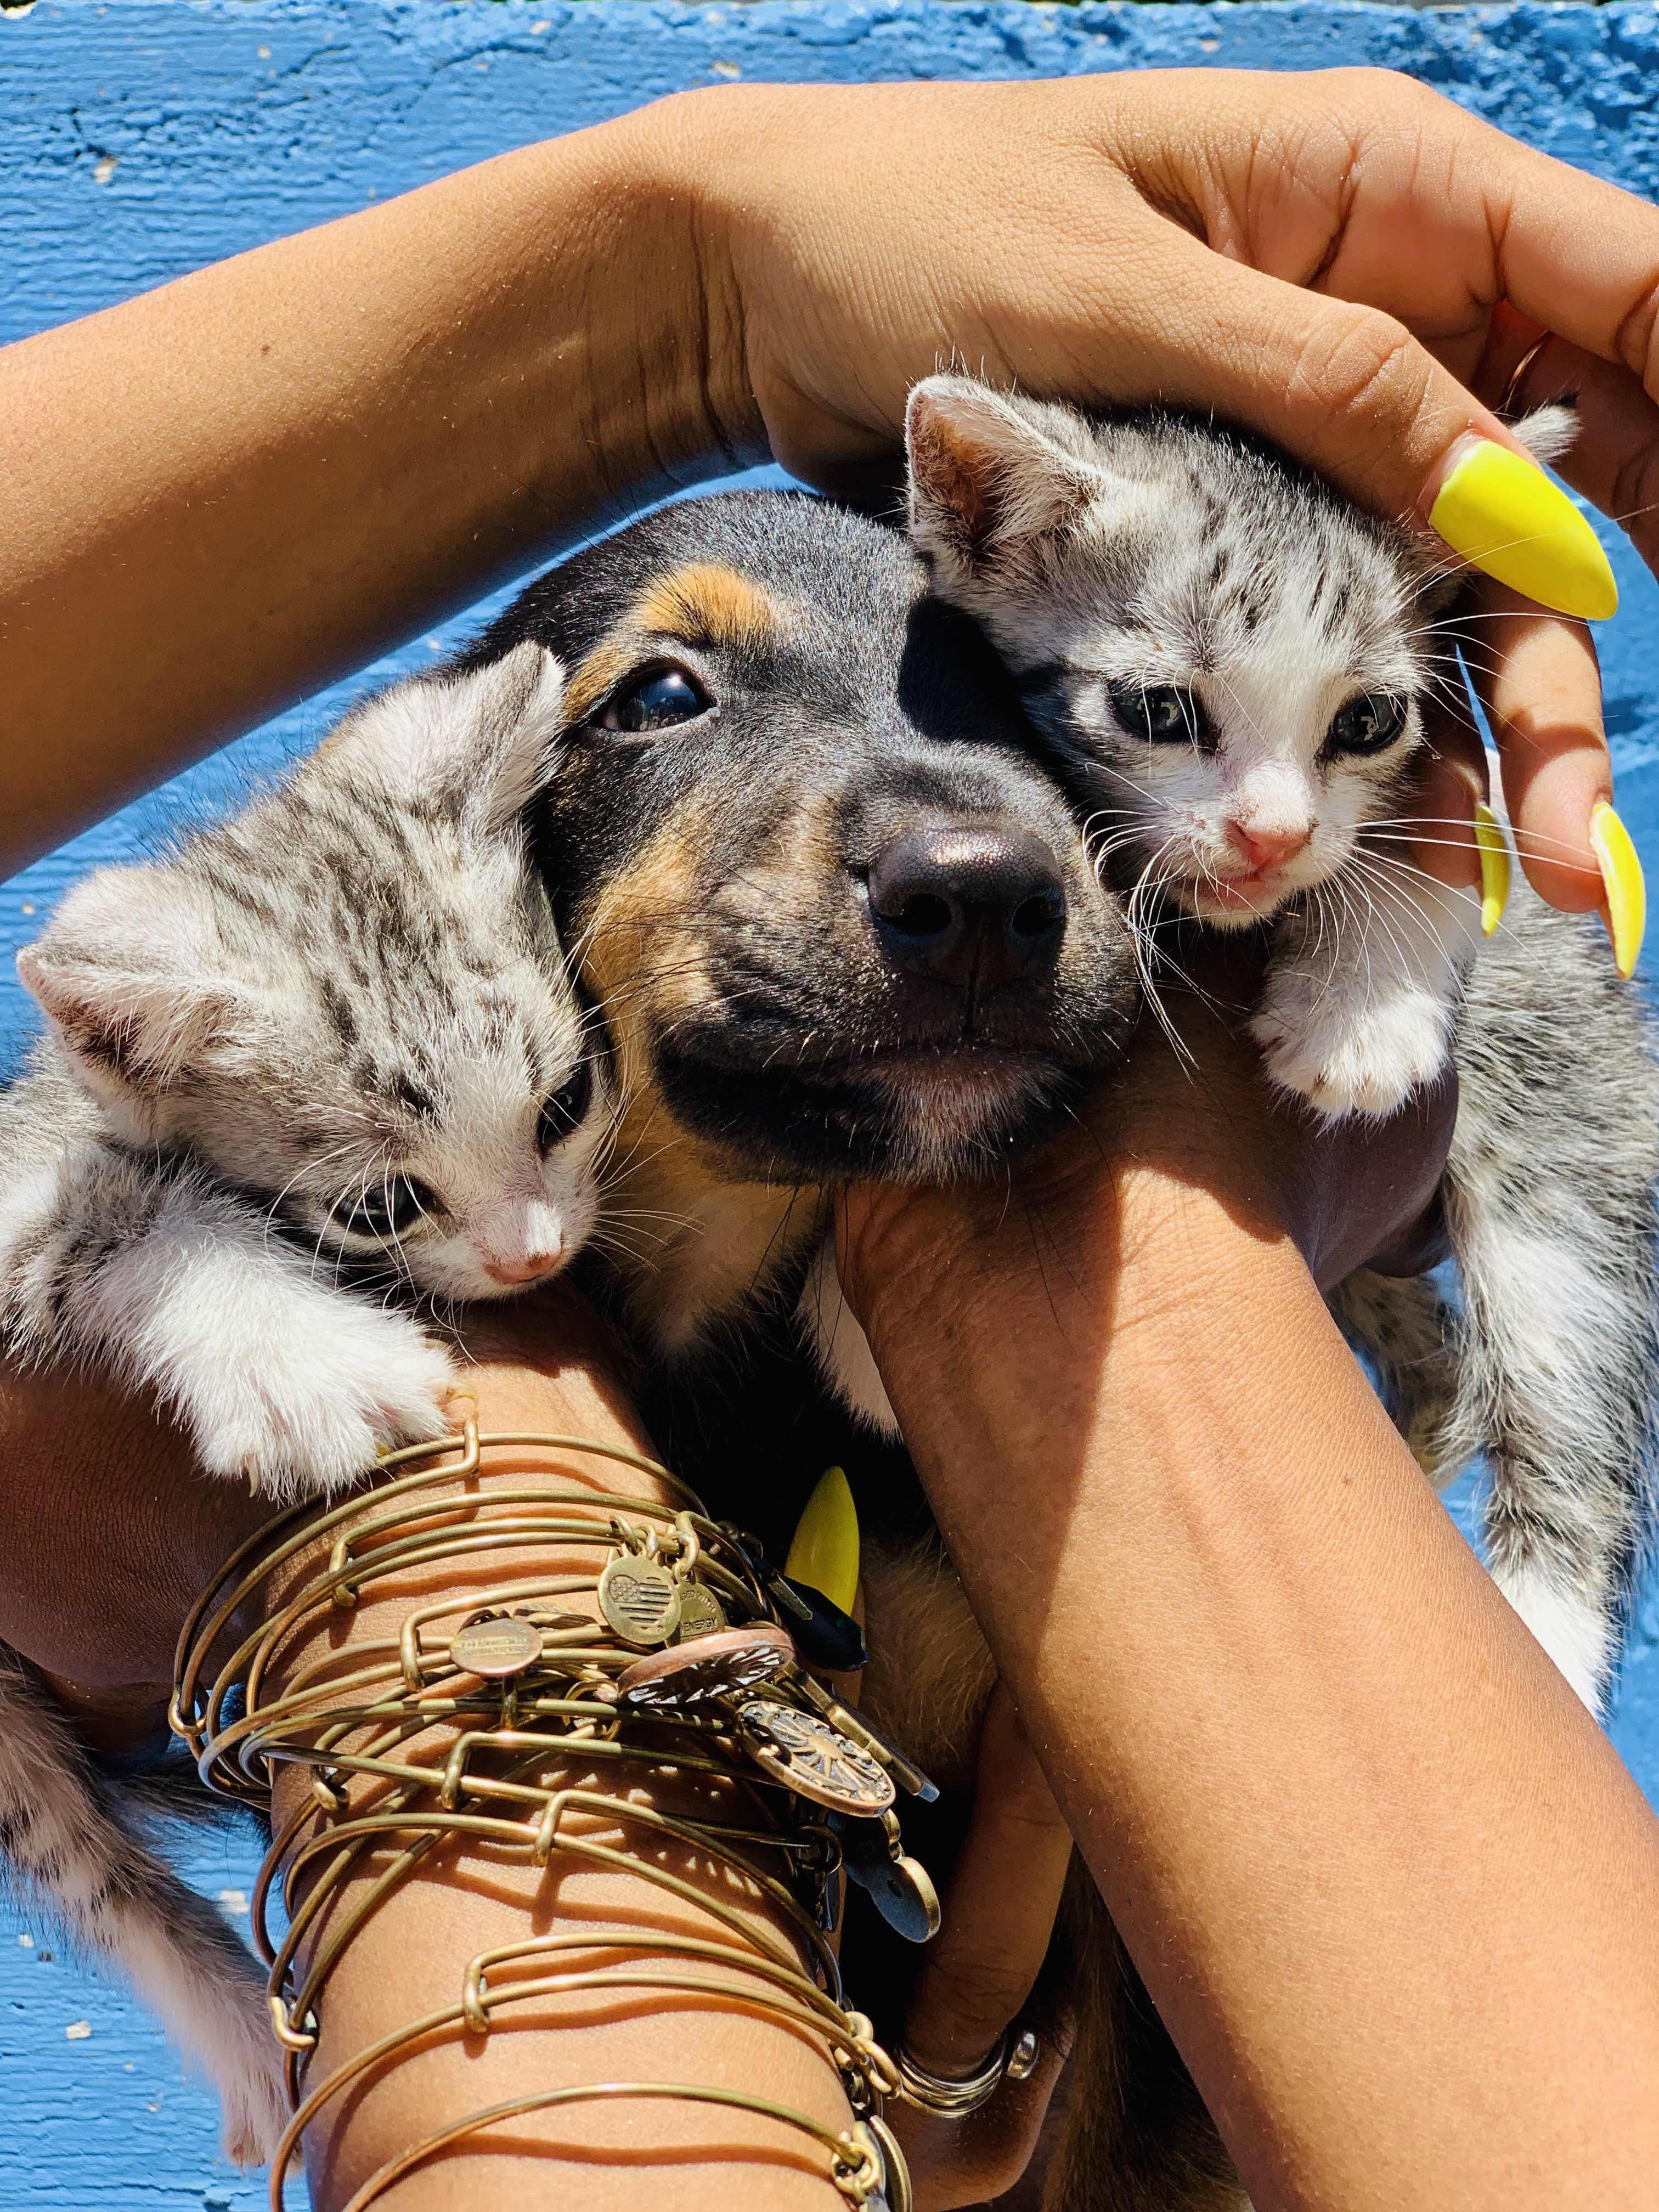 Two tabby kittens with a black puppy